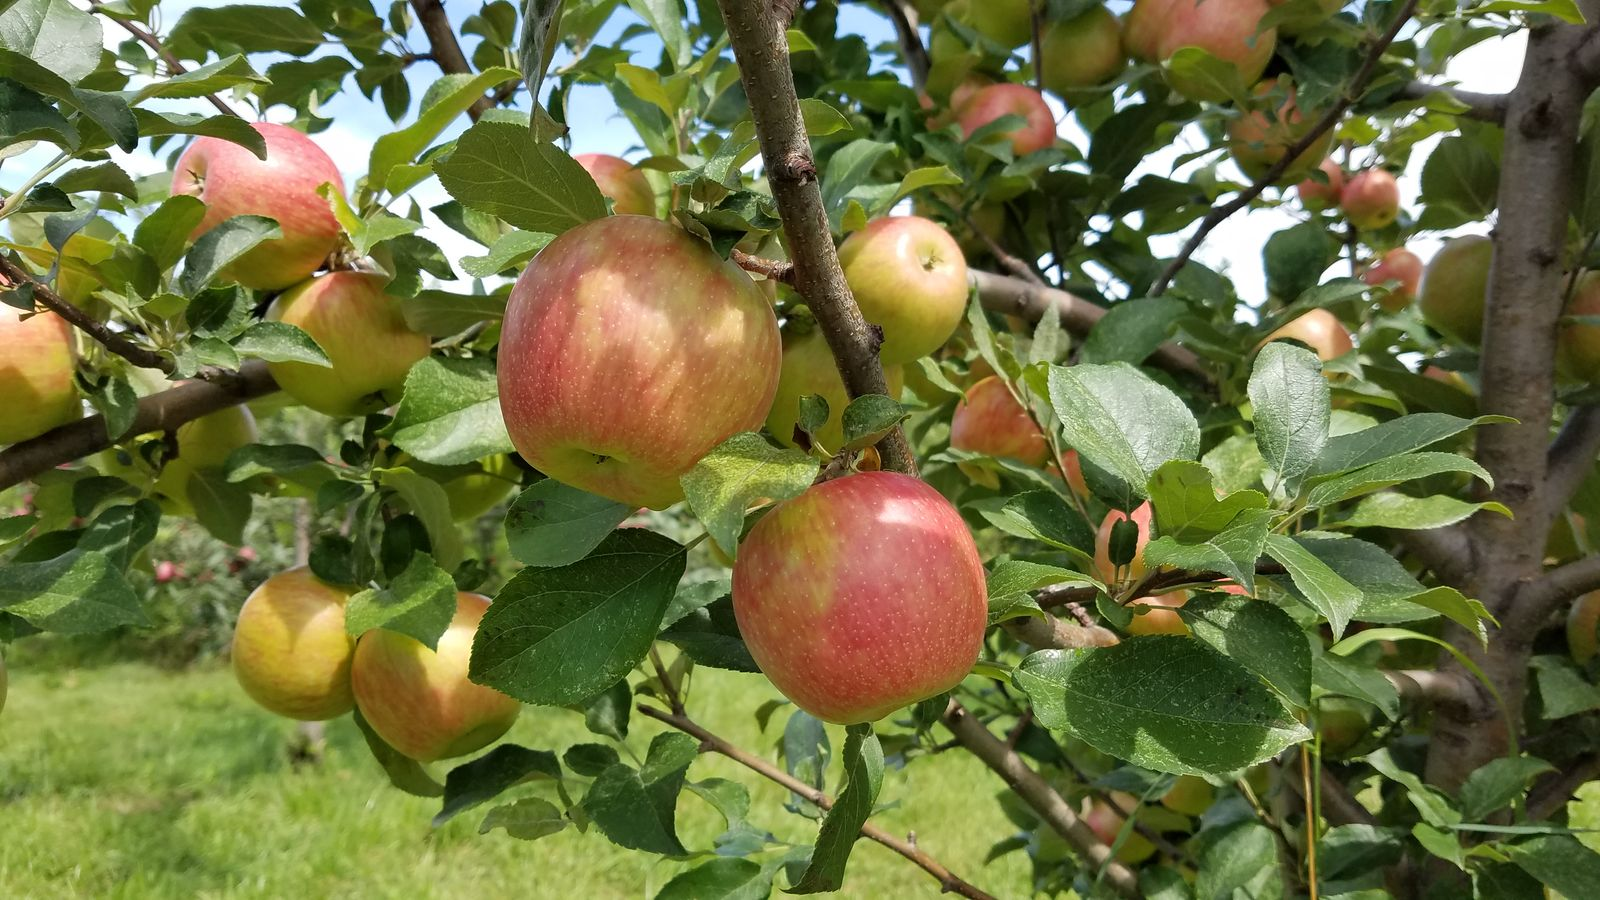 Macoun apples growing at Randall Orchards. (WGME)